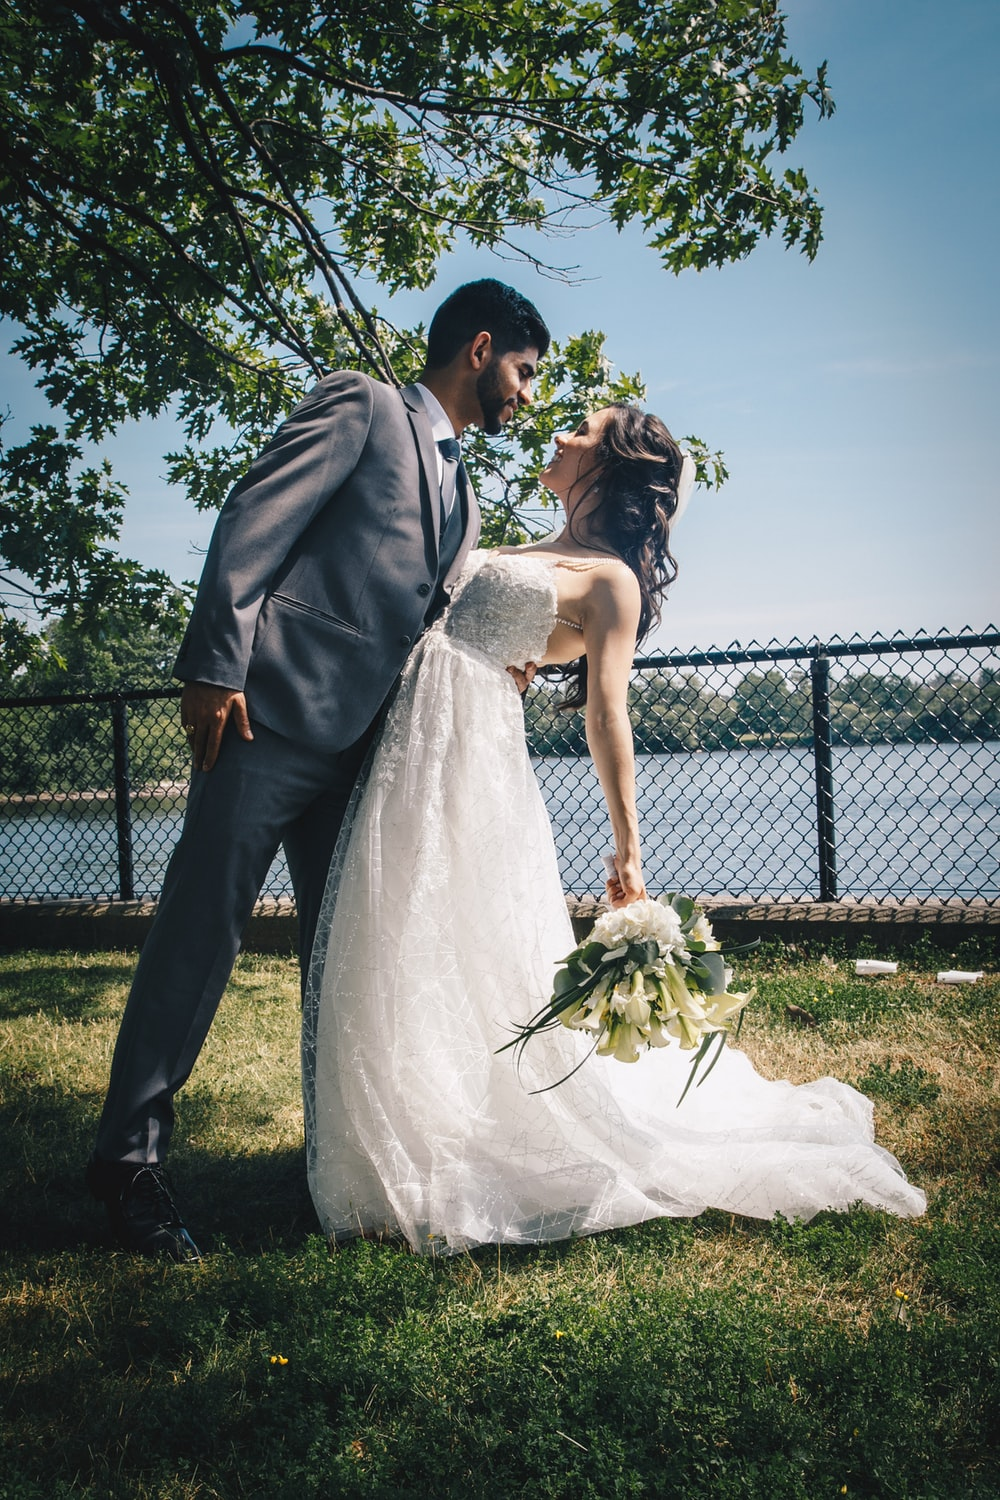 newly wed outside under green leaf tree near body of water during daytime